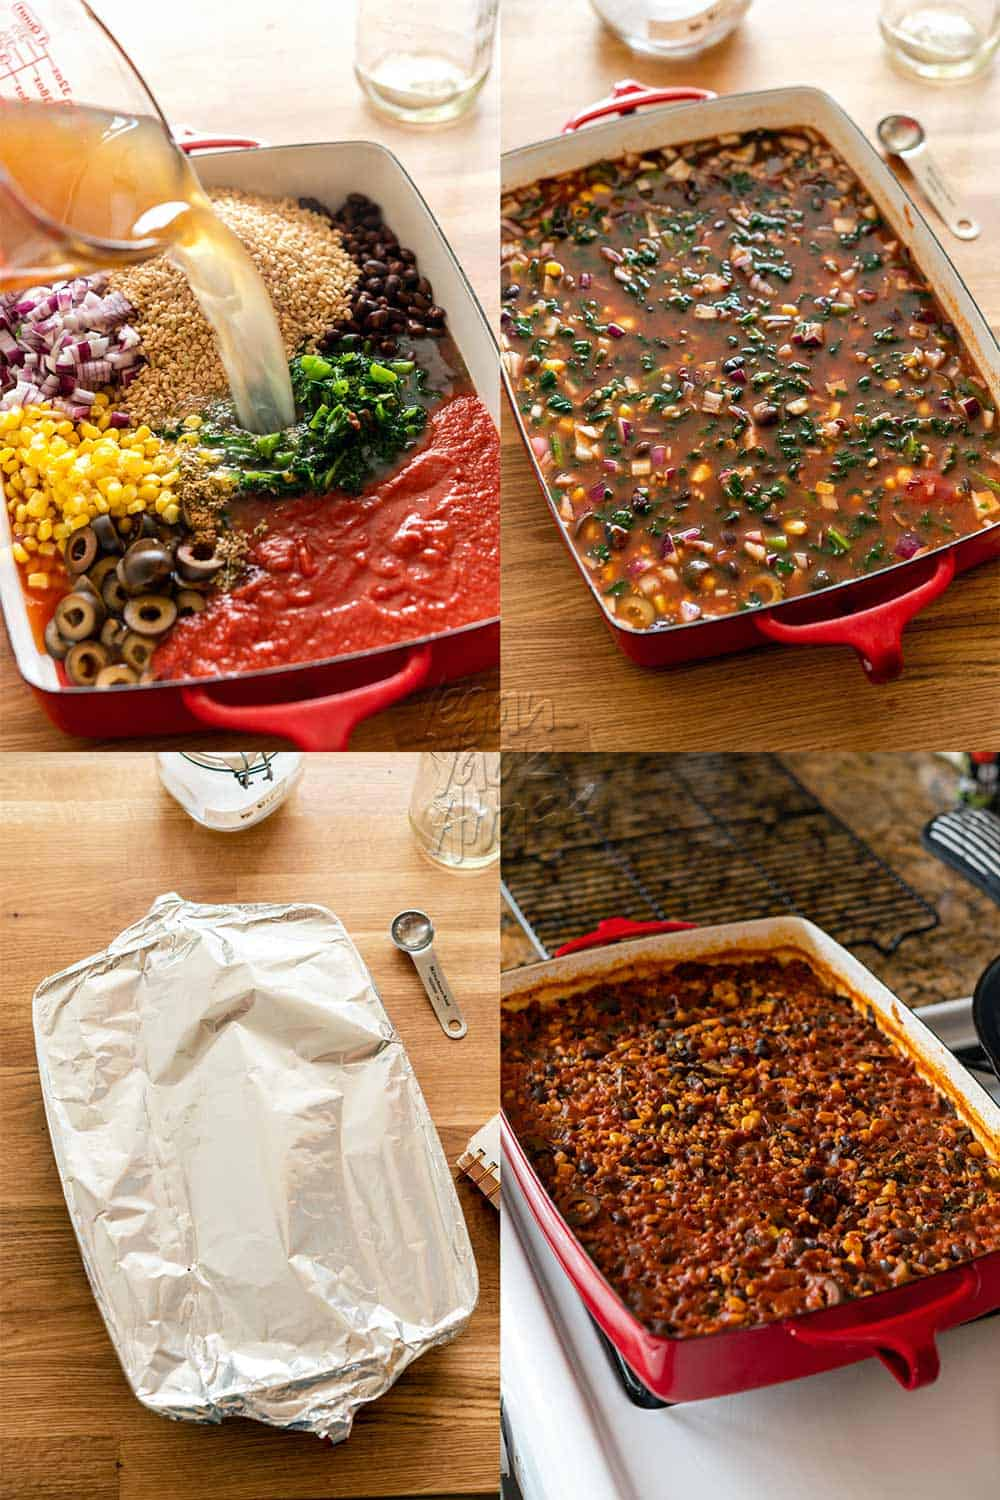 Image collage of assembly of rice bake in a red casserole dish